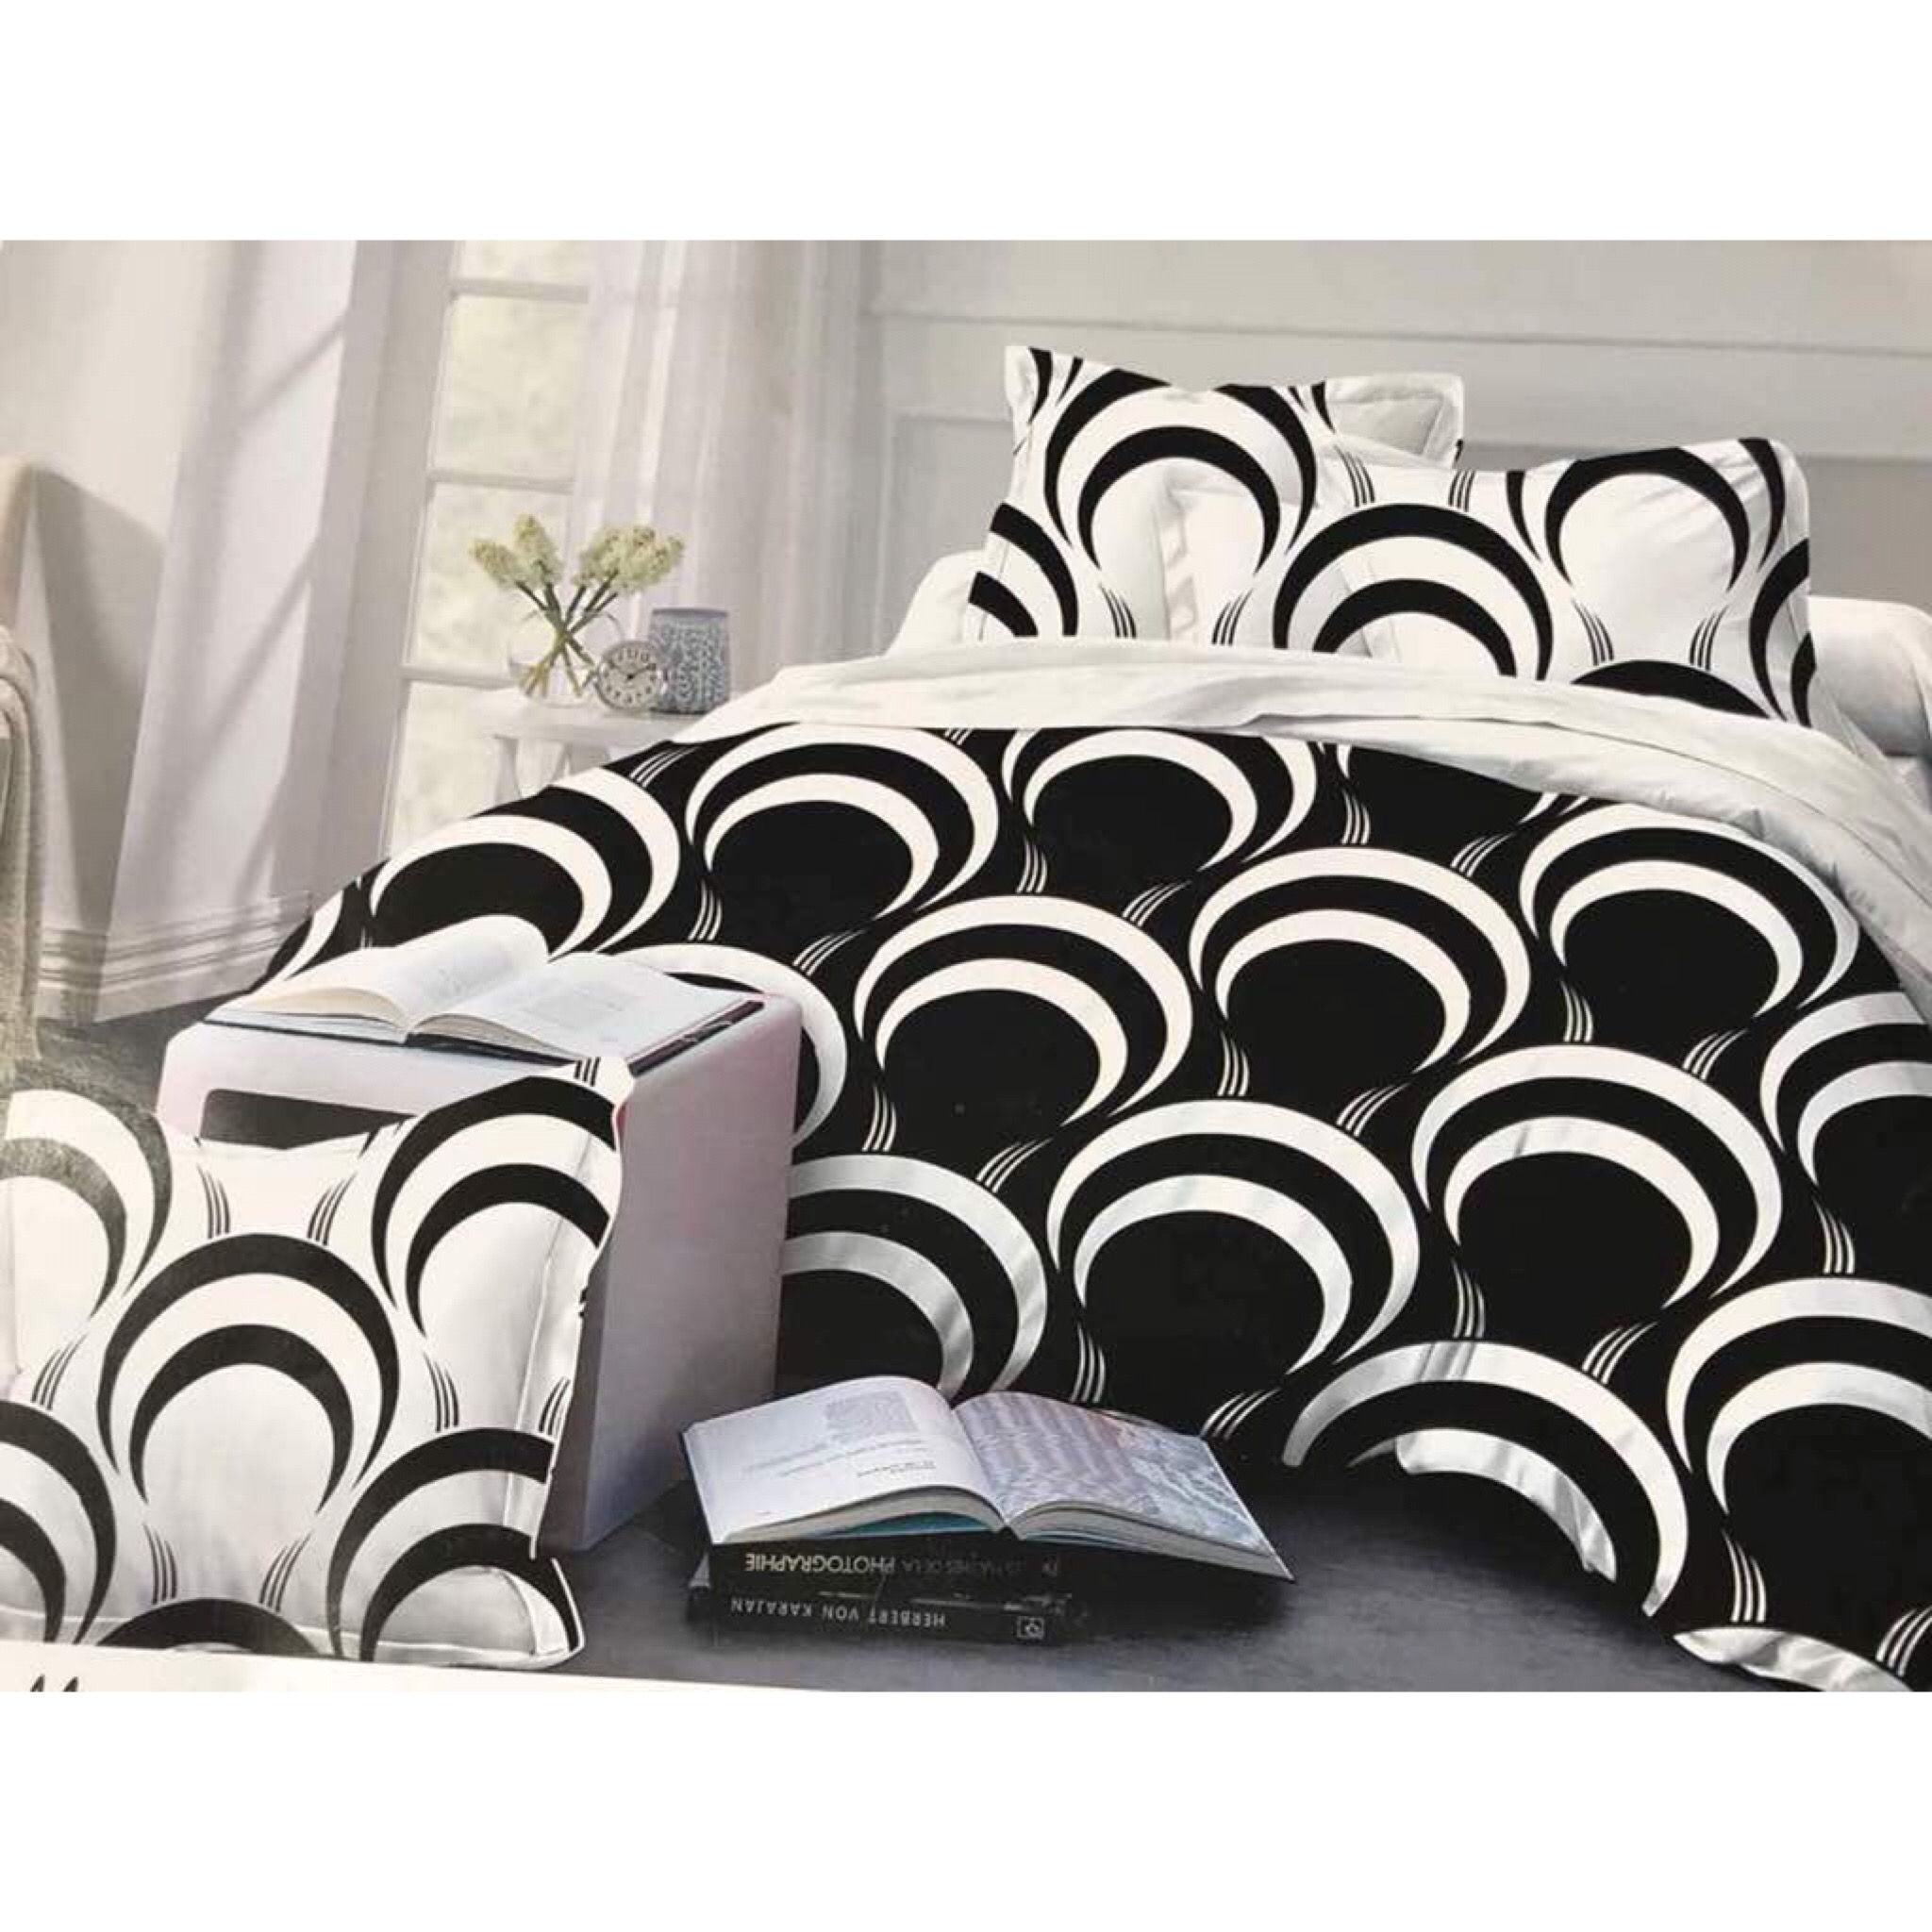 Pin by Madinna on Made in Nigeria Bed sheets, Black